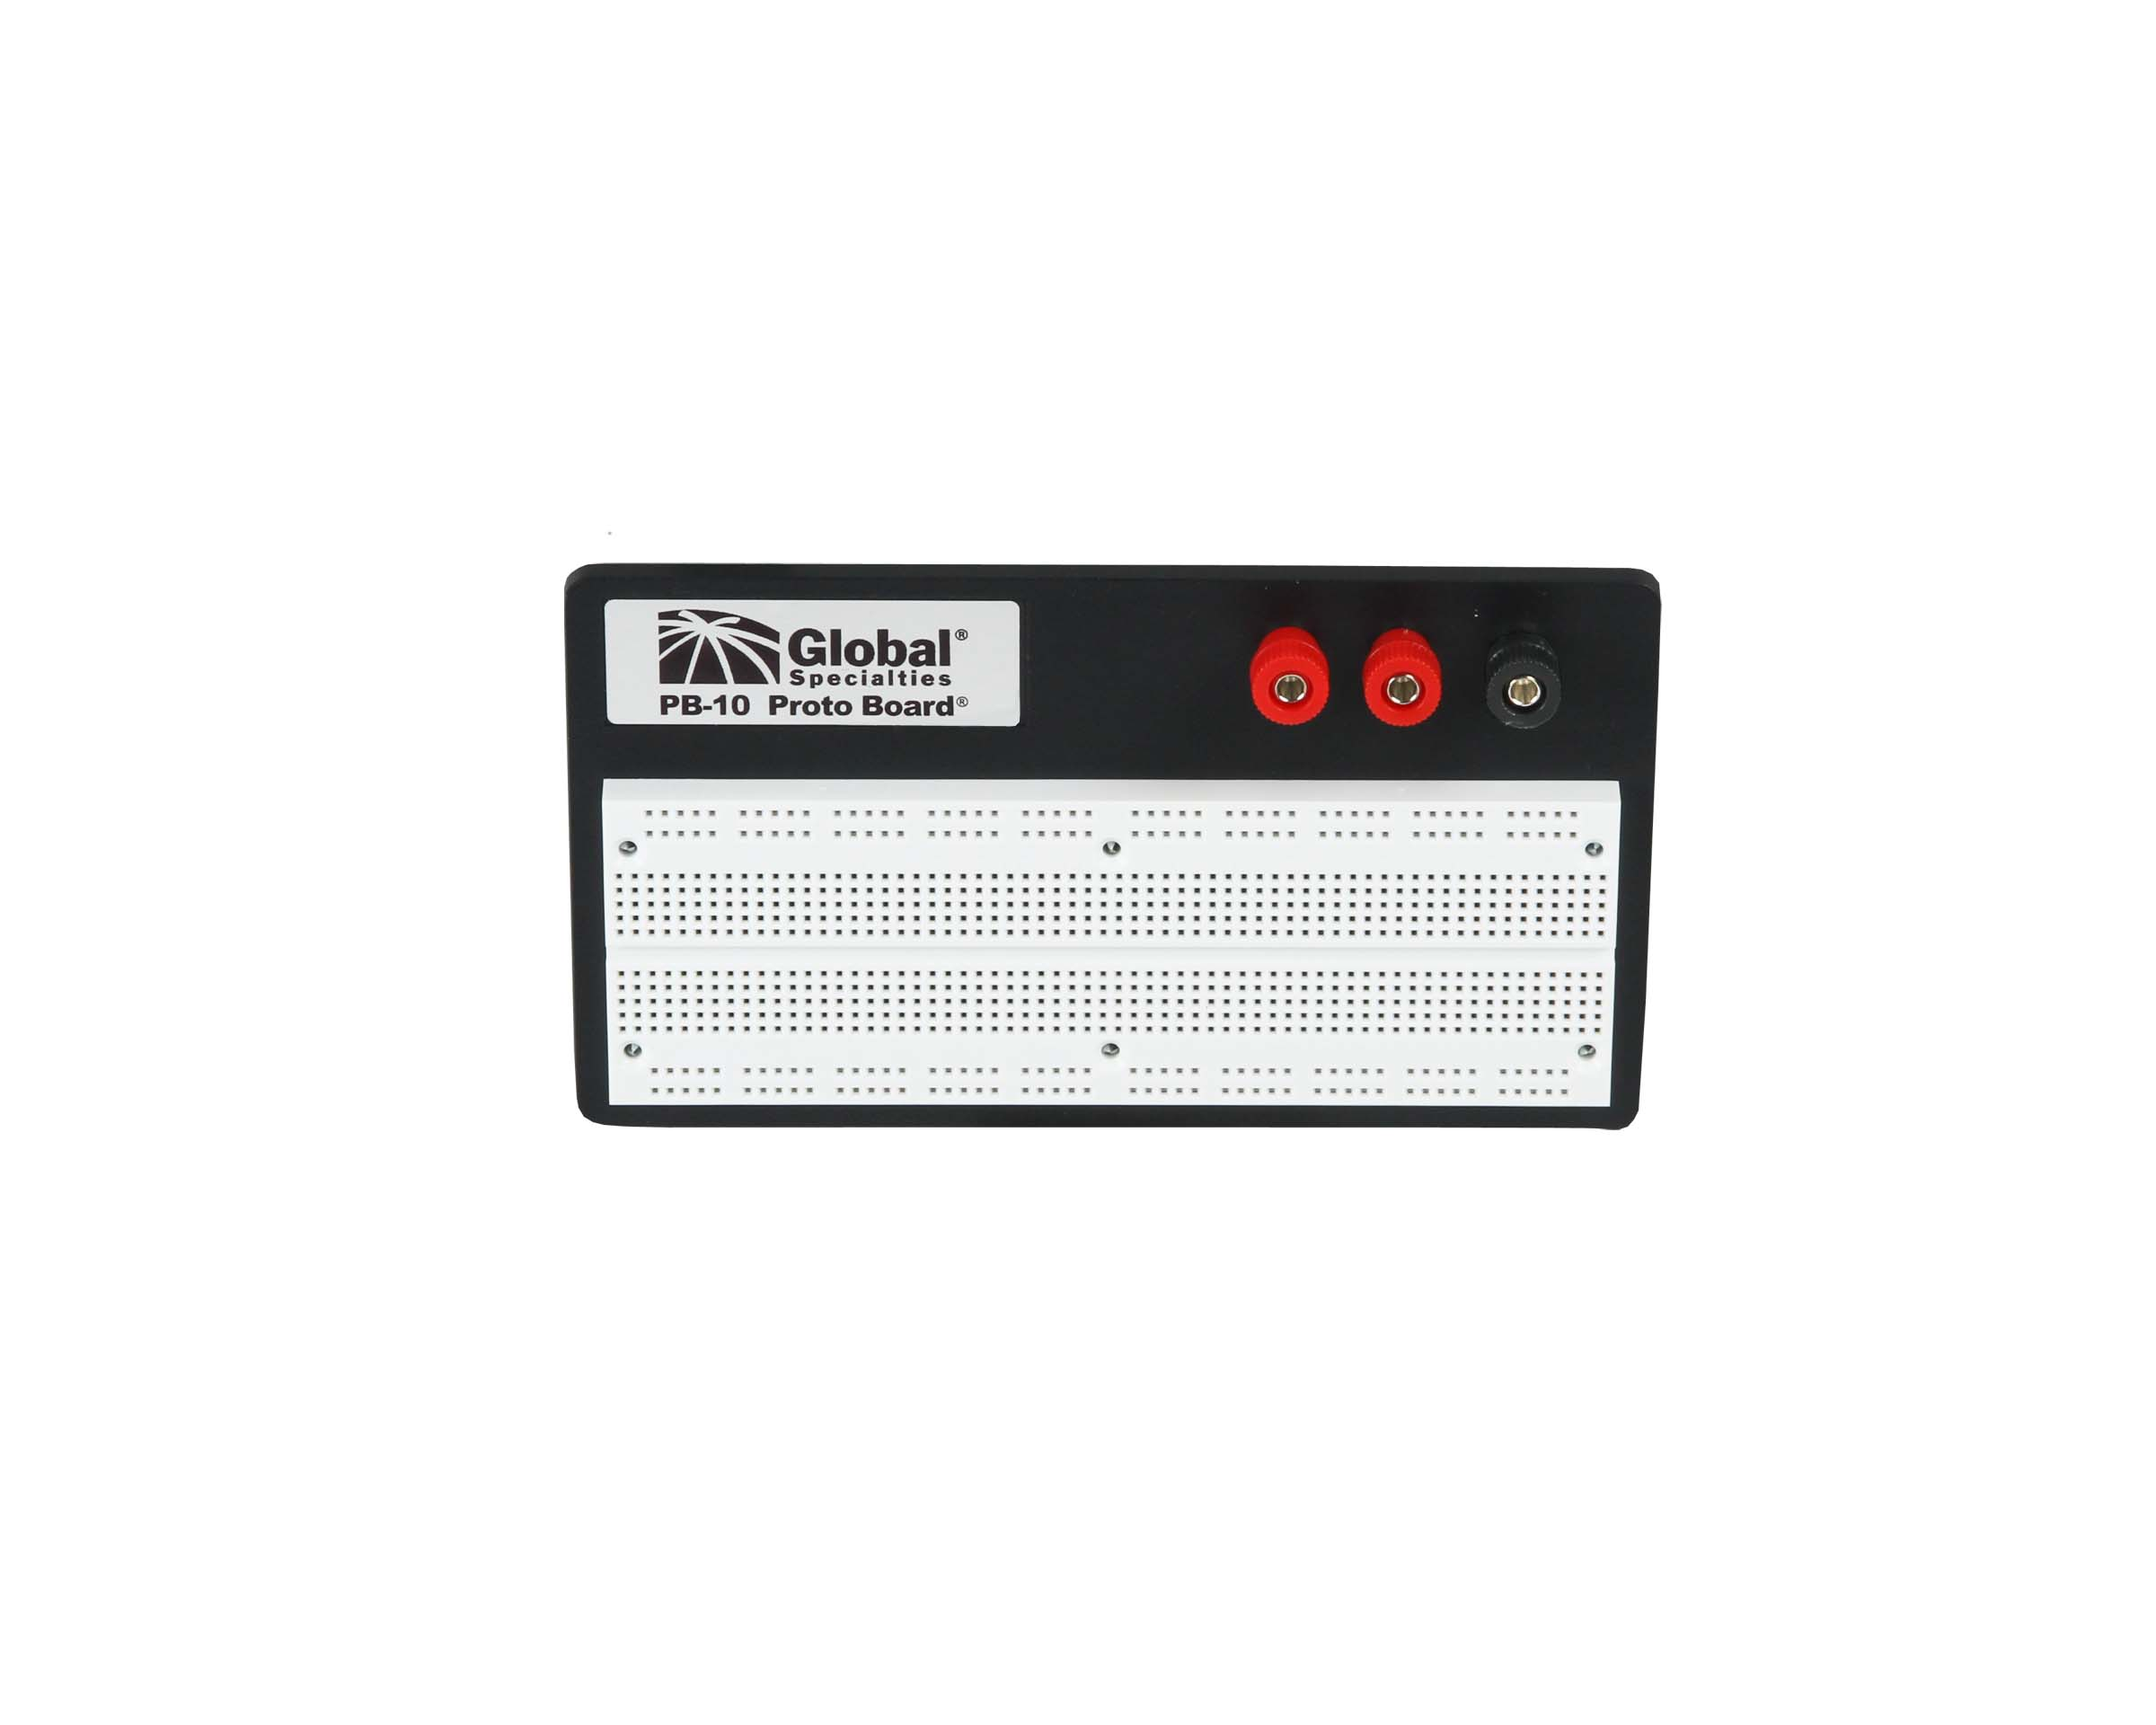 Global Specialties PB-10 Externally Powered 840 Tie-Point Breadboard Photo